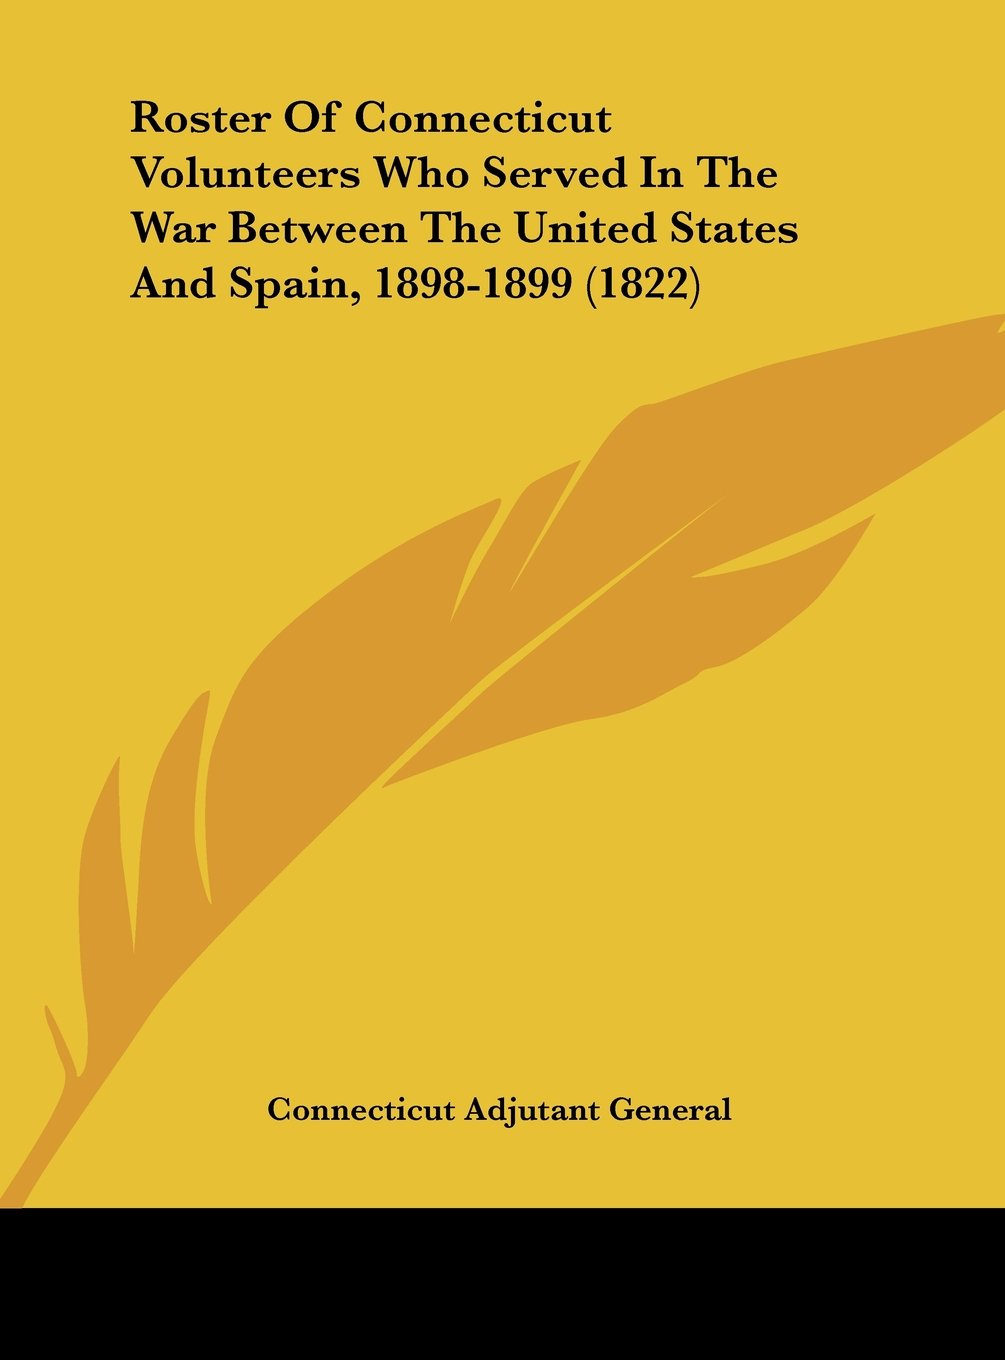 Roster of Connecticut Volunteers Who Served in the War Between the United States and Spain, 1898-1899 (1822) ebook